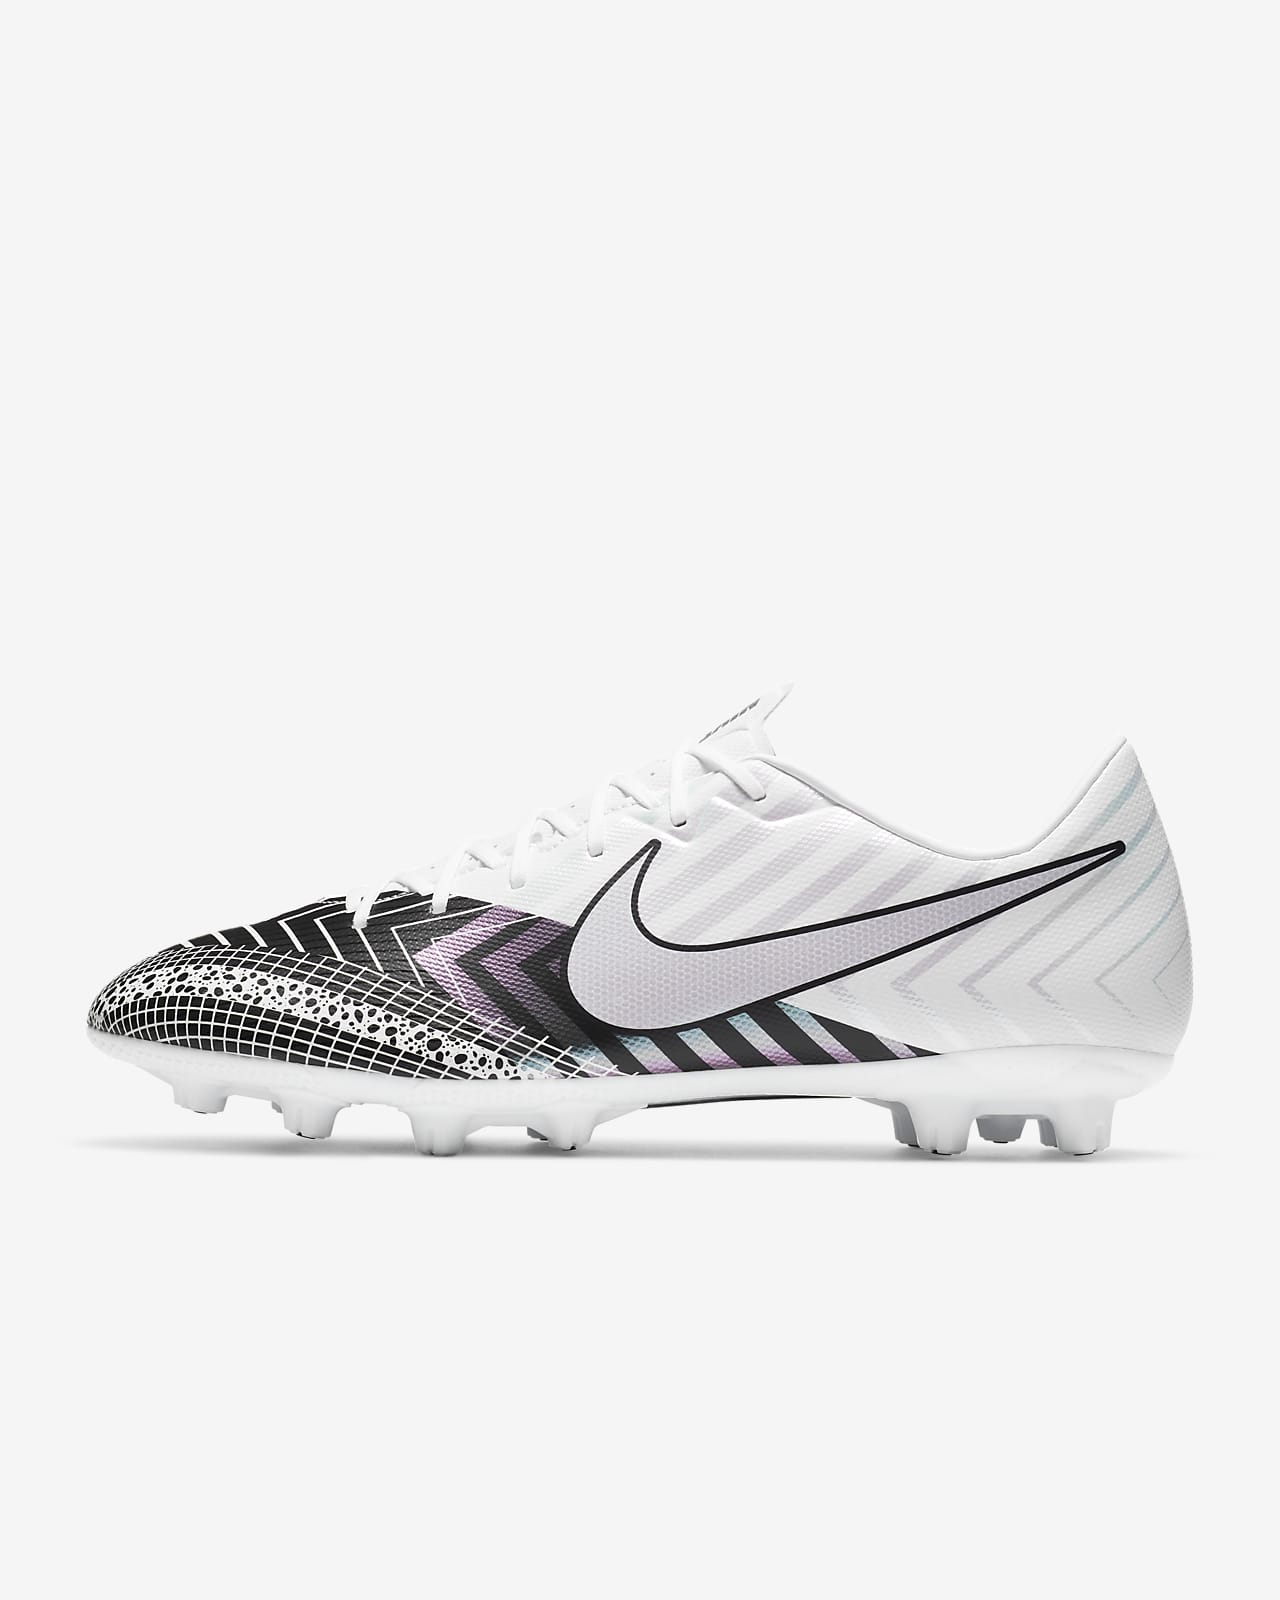 Nike Mercurial Vapor 13 Academy MDS HG Hard-Ground Soccer Cleat